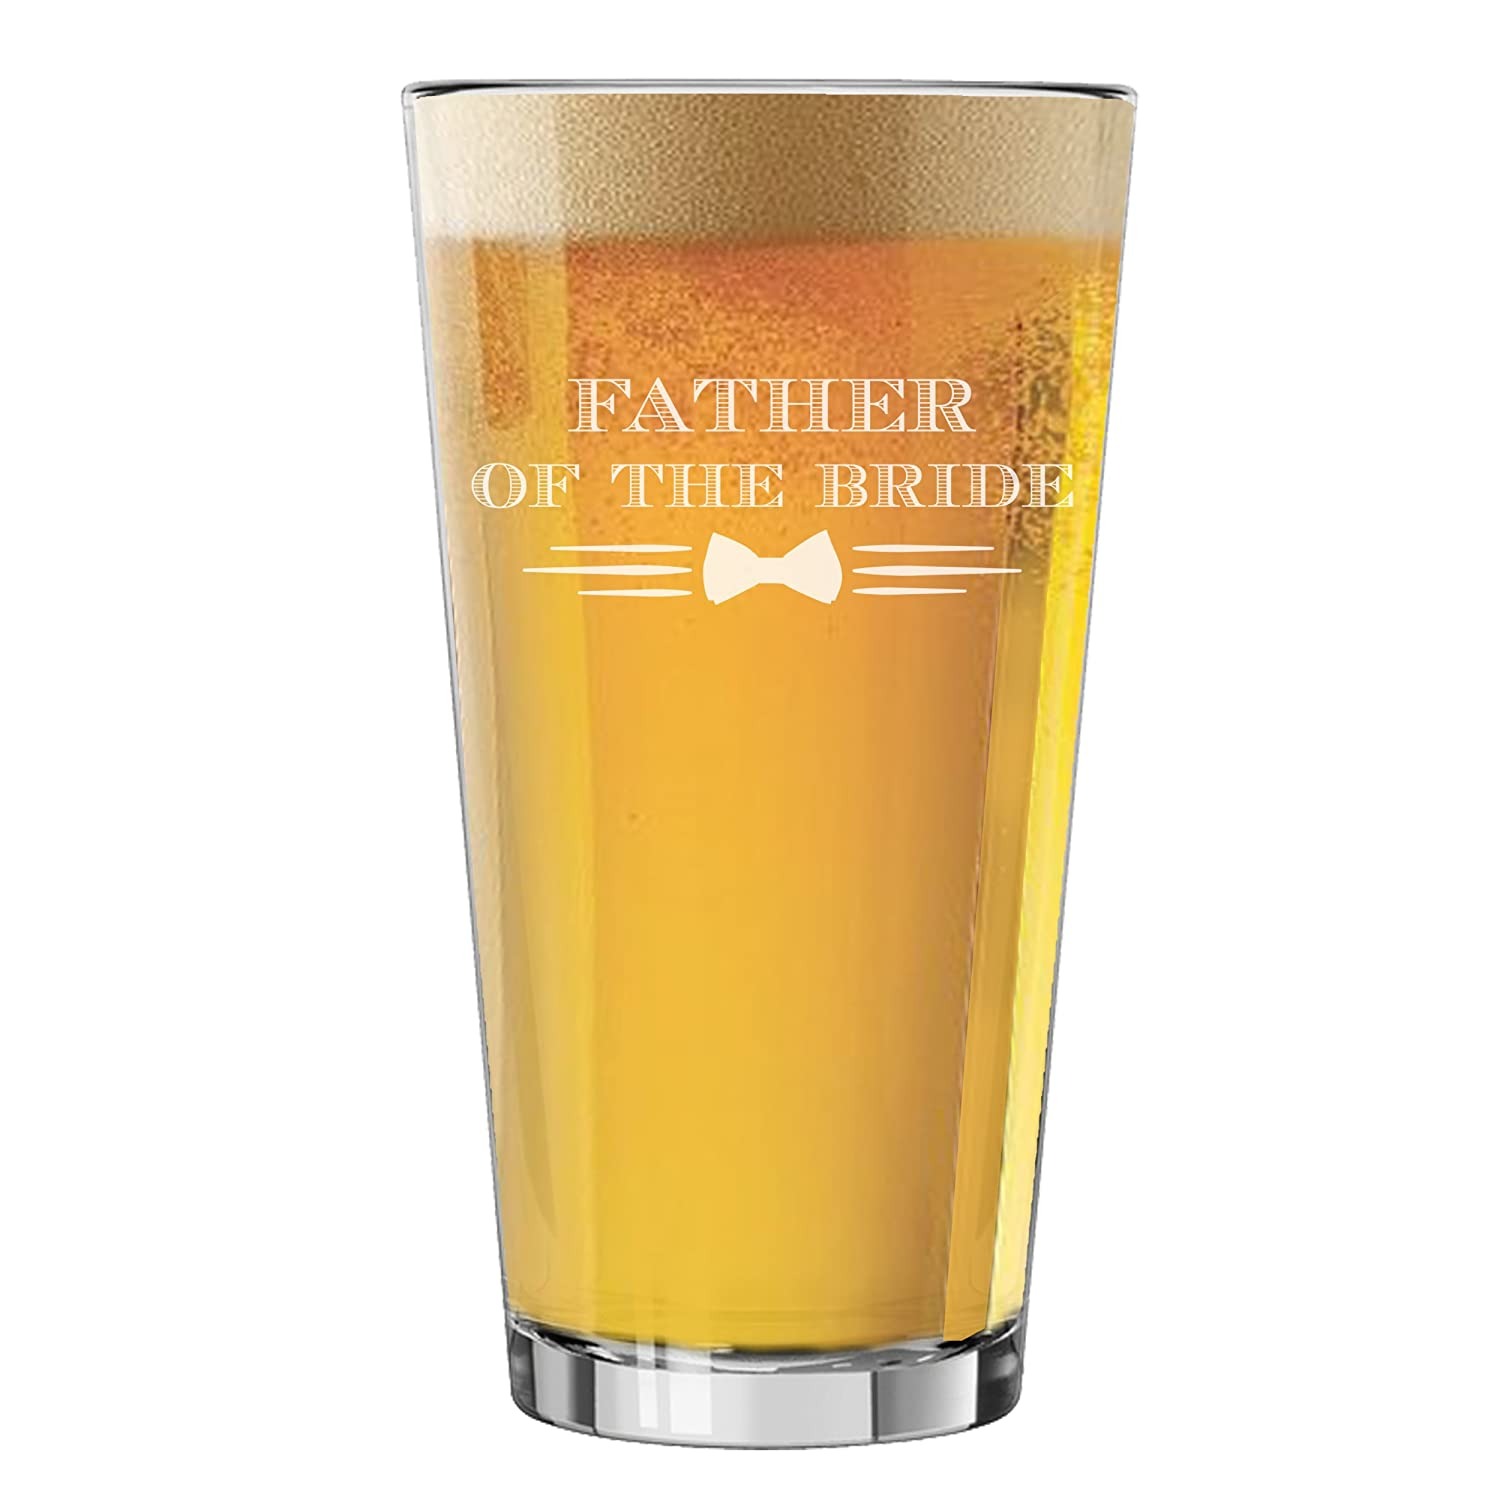 Pint Glasses for Bachelor Party, Weddings, Wedding Favors, Beer Gifts (Badge Style 16oz, Best Man Glass) My Personal Memories MPM0354